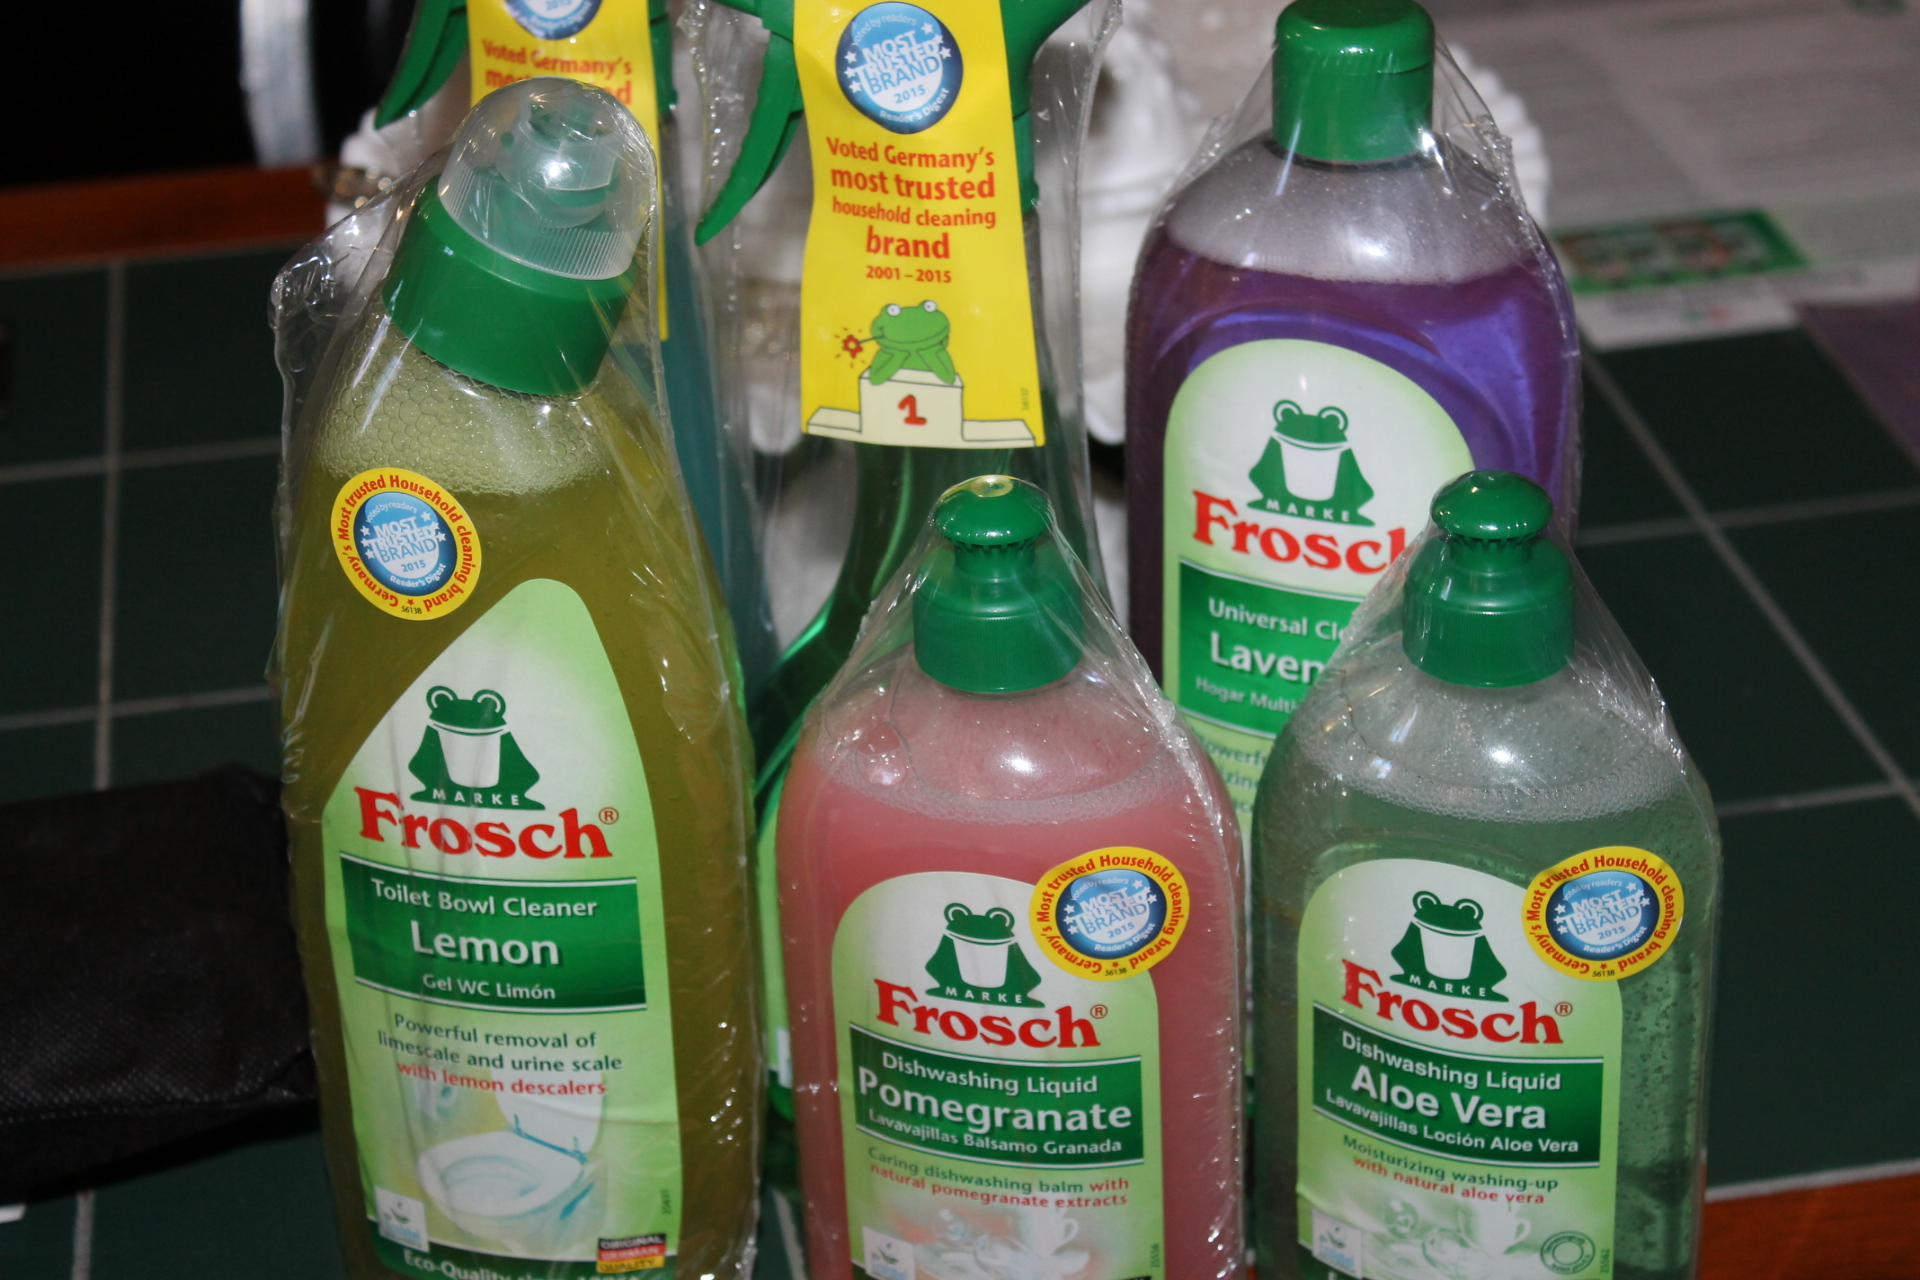 Frosch environmentally friendly cleaning products #MomsMeet #Frosch